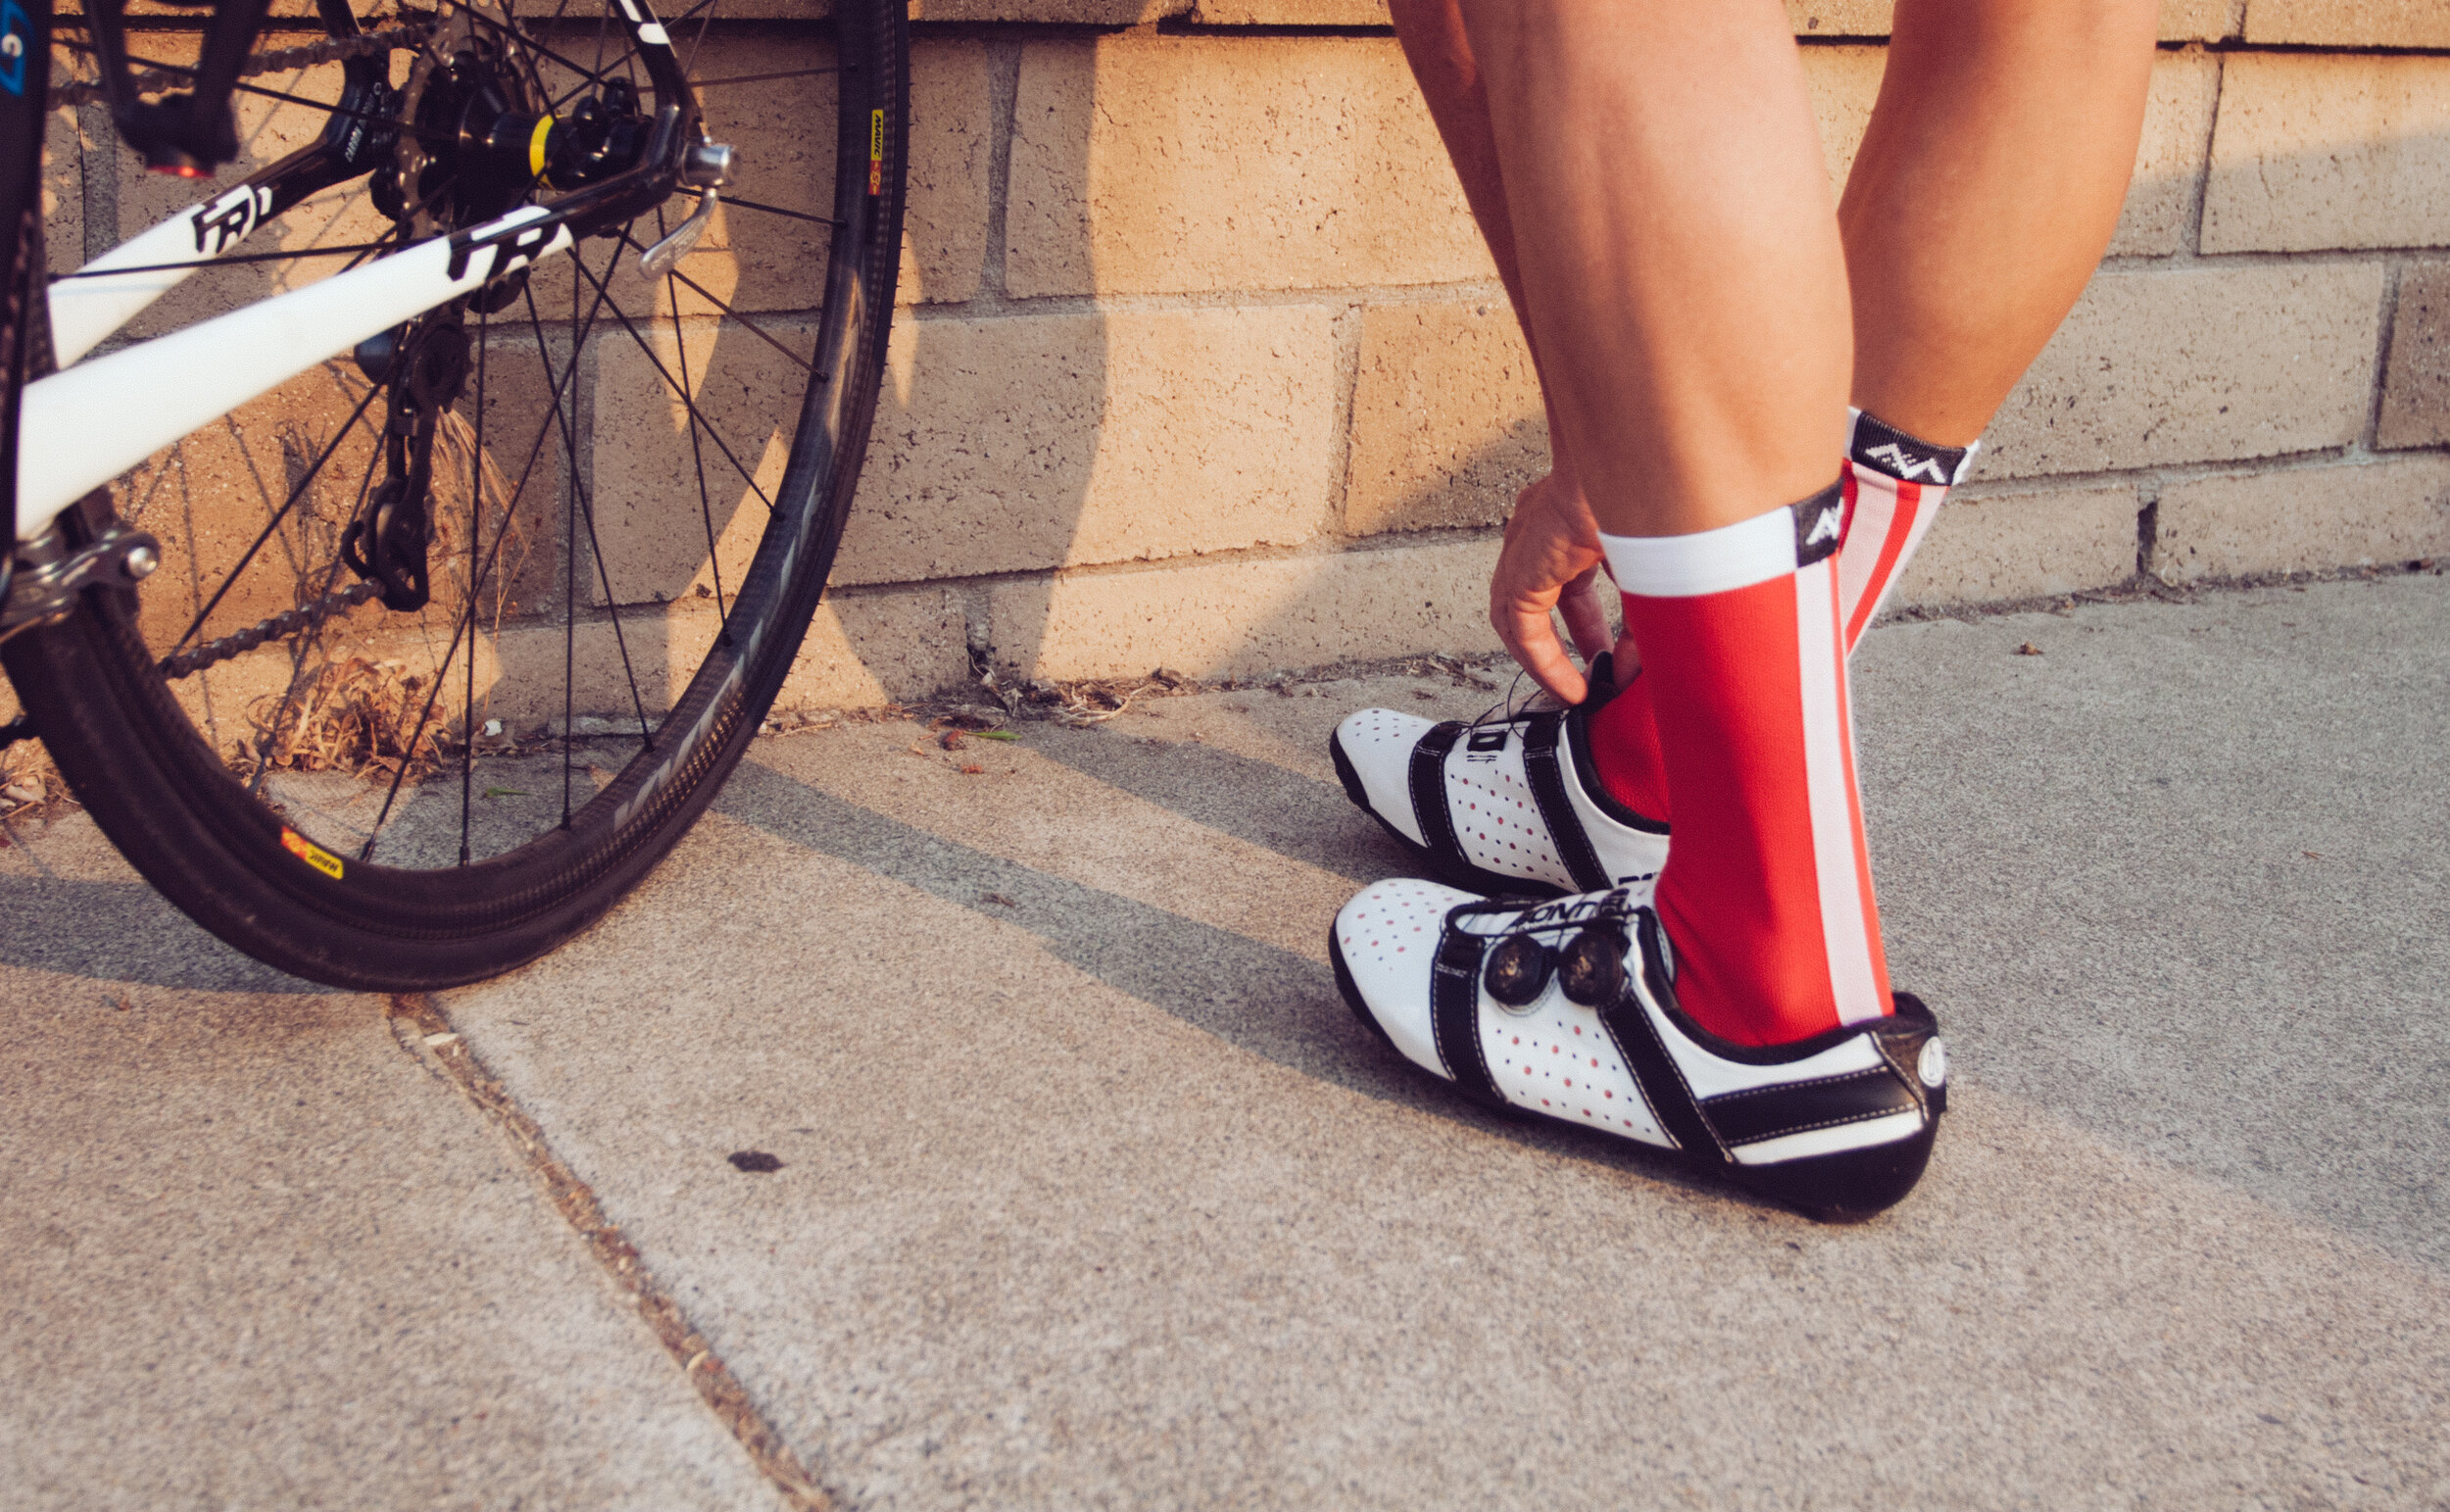 The Red Racer cycling sock from Mint.